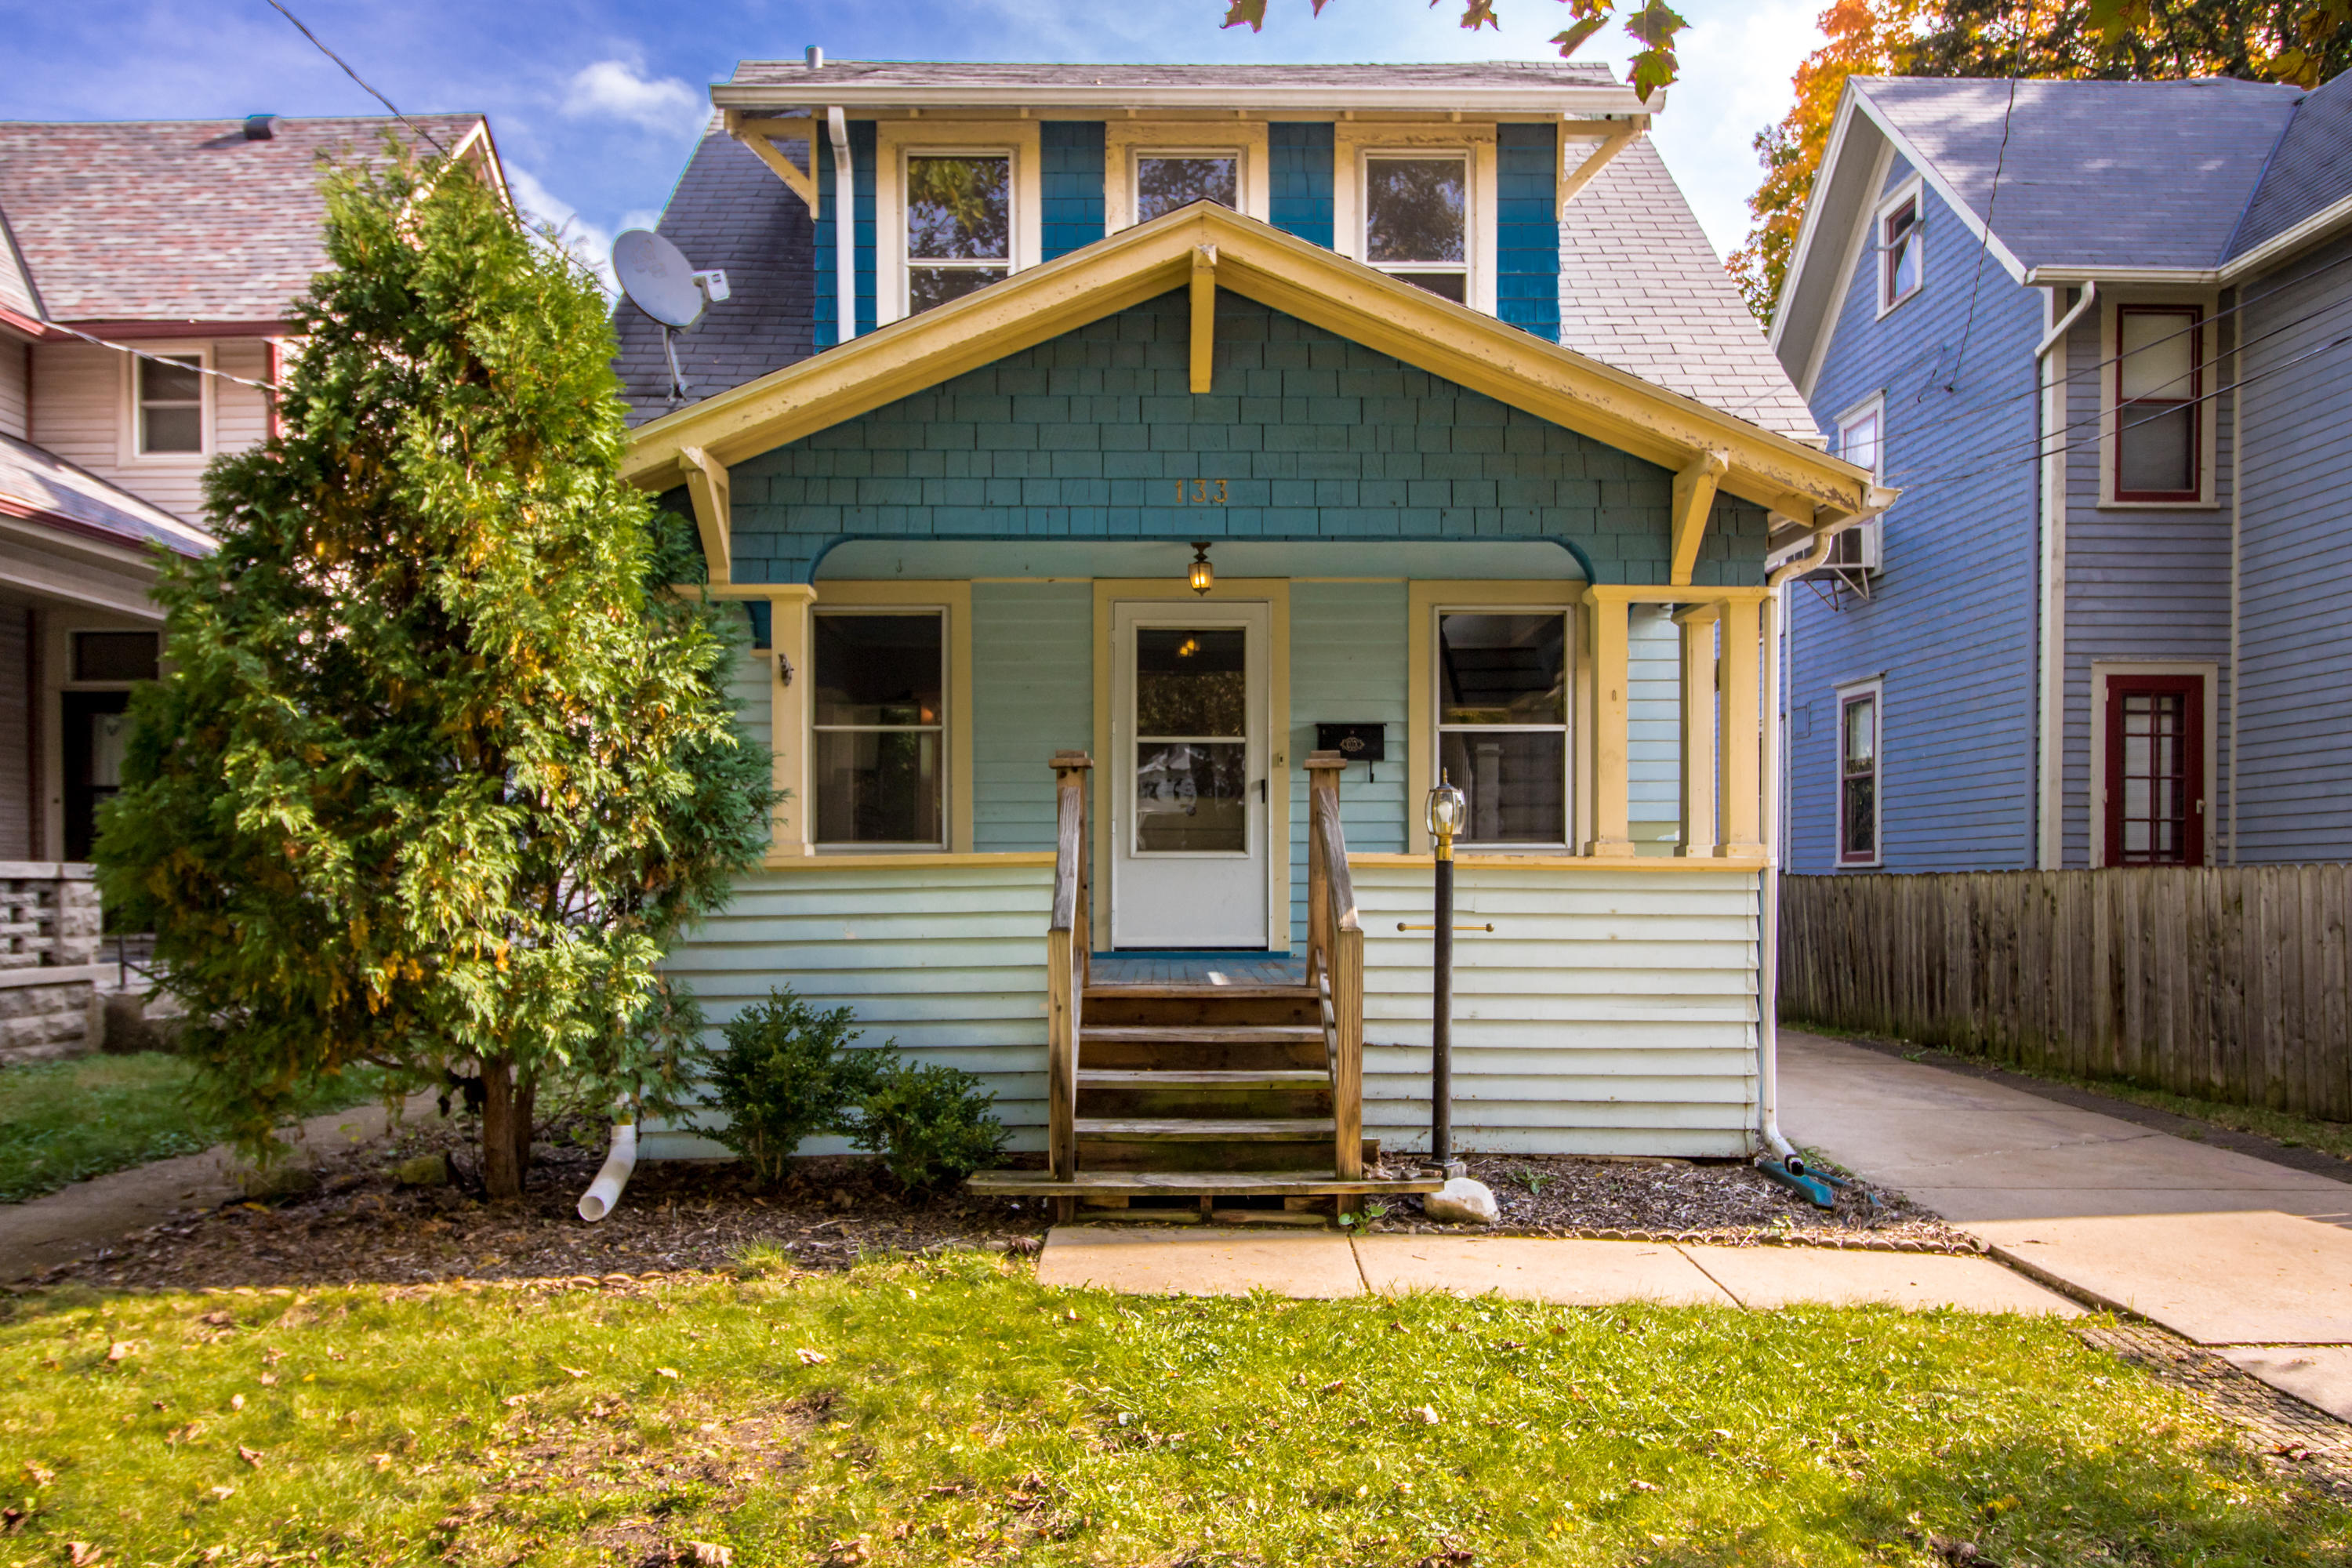 133 Randall St, Waukesha, Wisconsin 53188, 2 Bedrooms Bedrooms, 5 Rooms Rooms,1 BathroomBathrooms,Single-Family,For Sale,Randall St,1609791